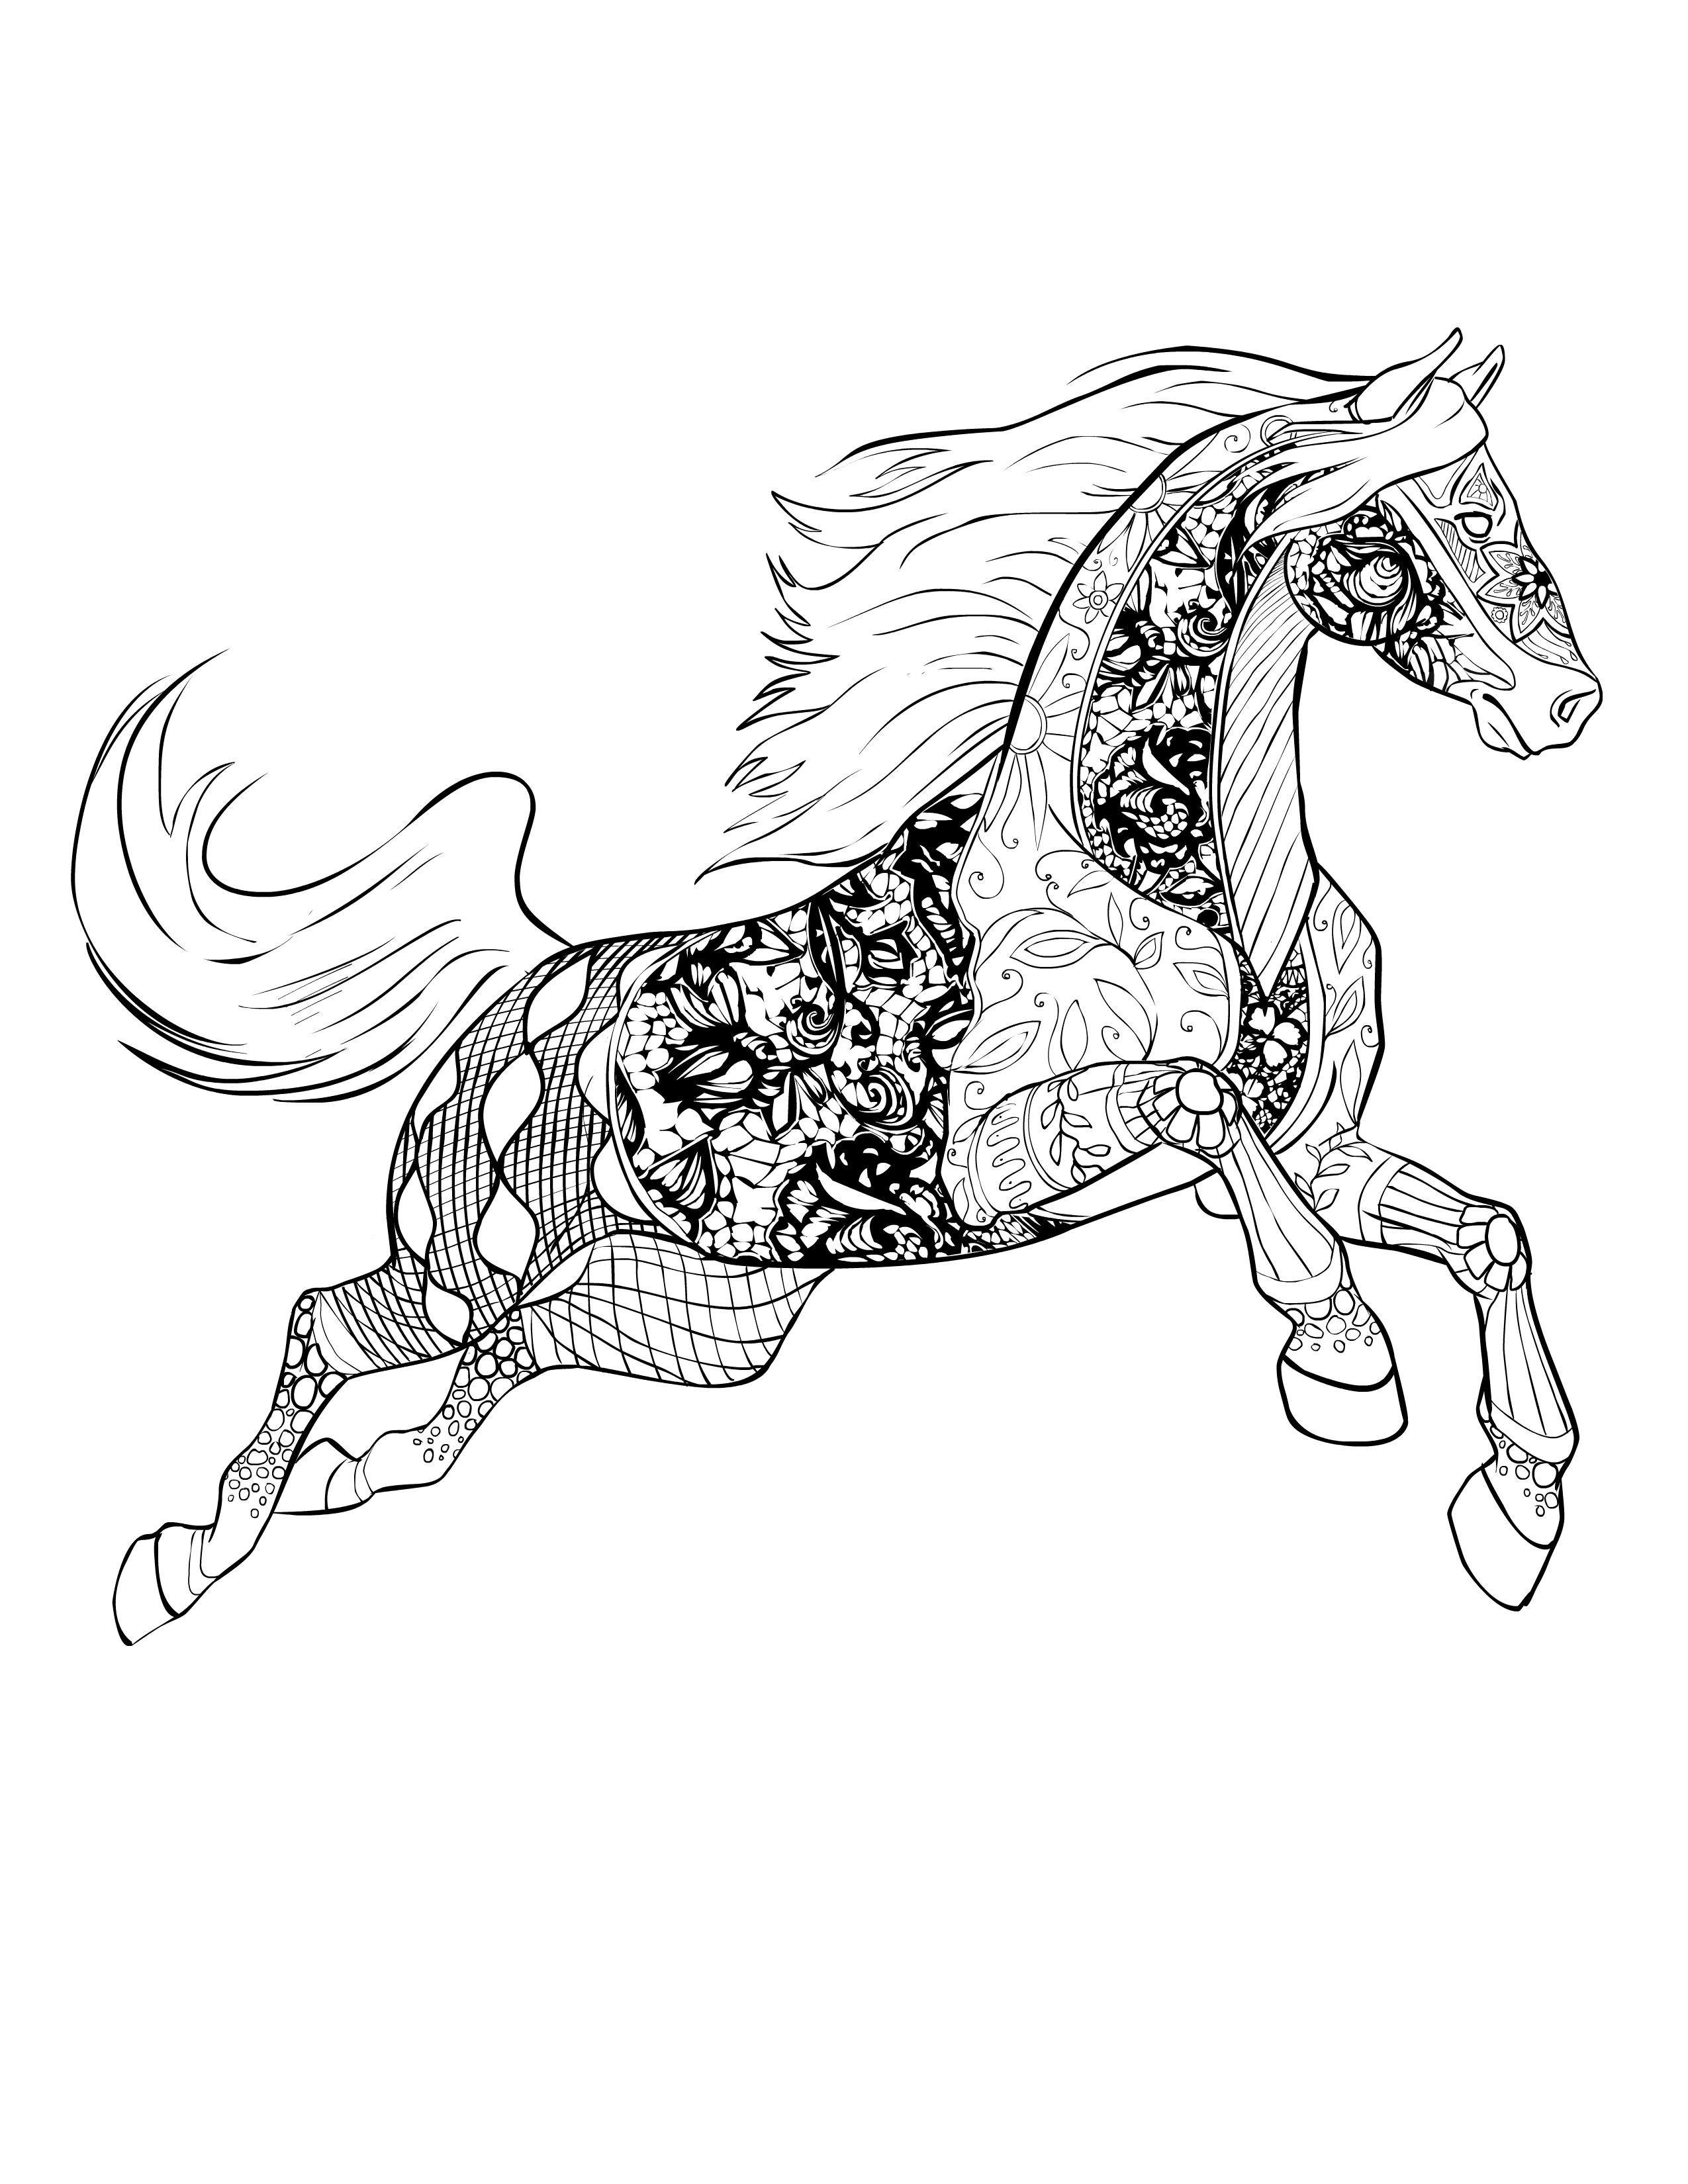 Coloring Pages Posters at GetDrawings.com | Free for personal use ...